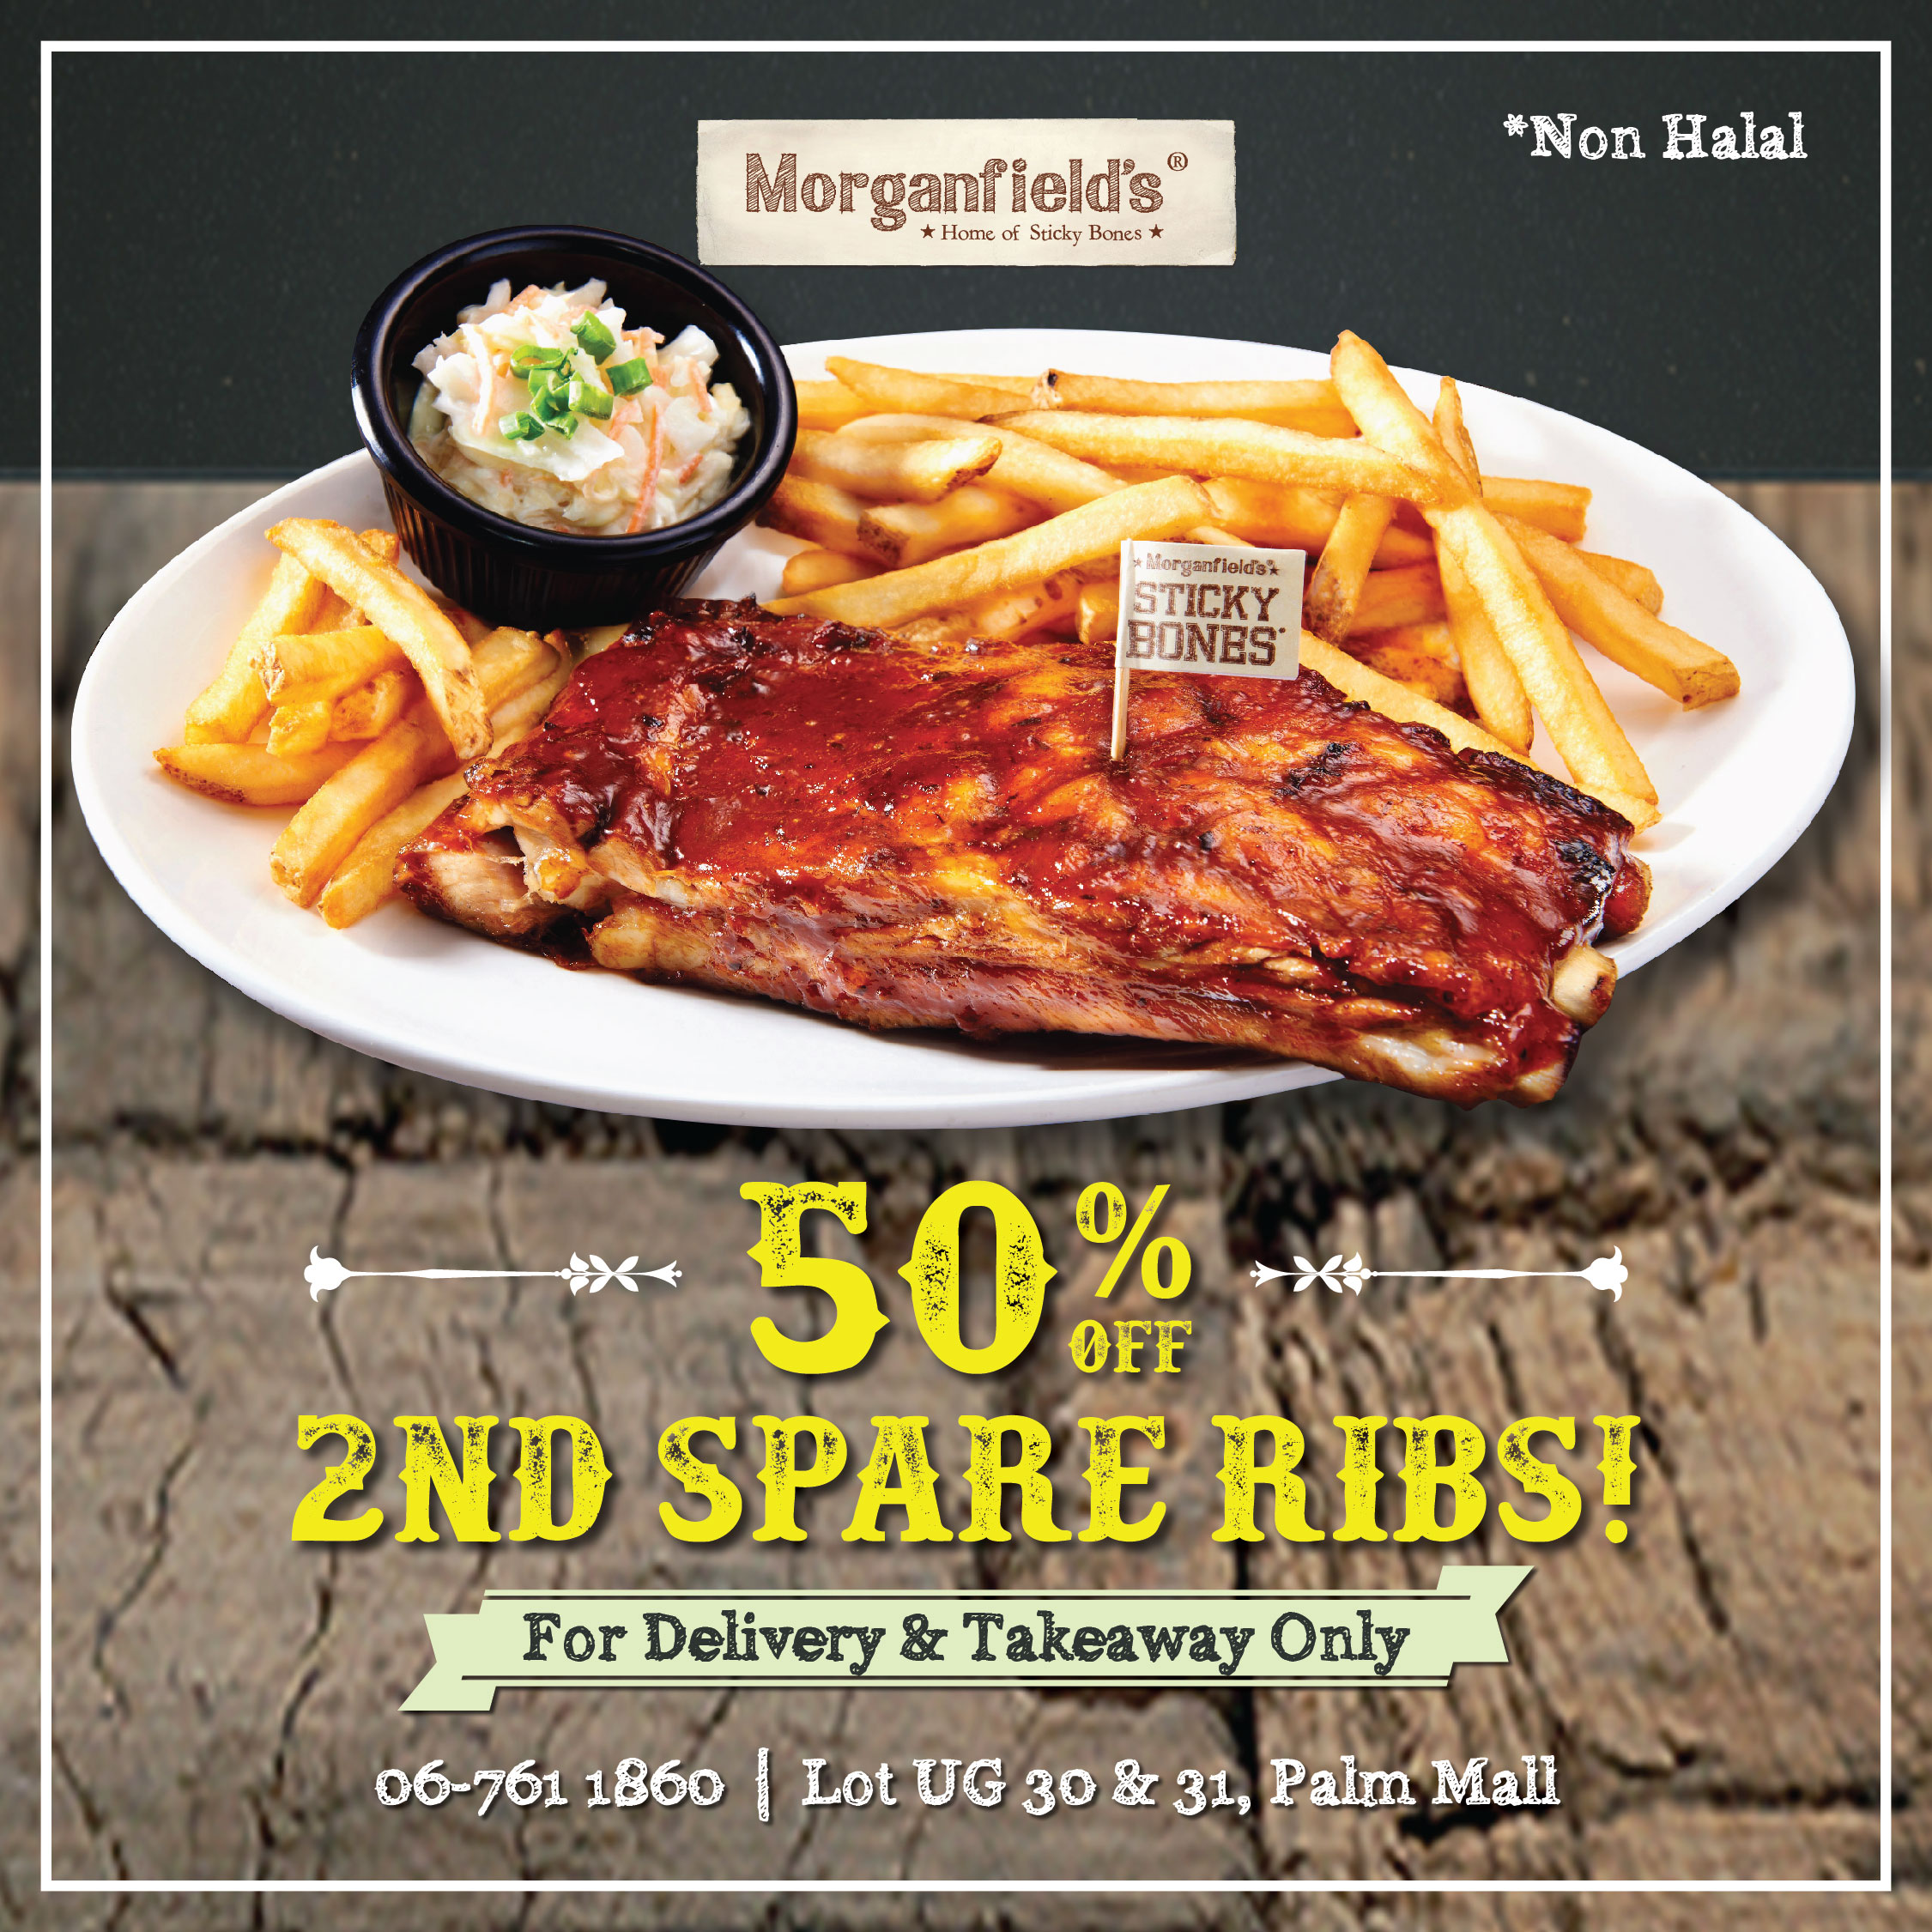 Morganfield's Delivery